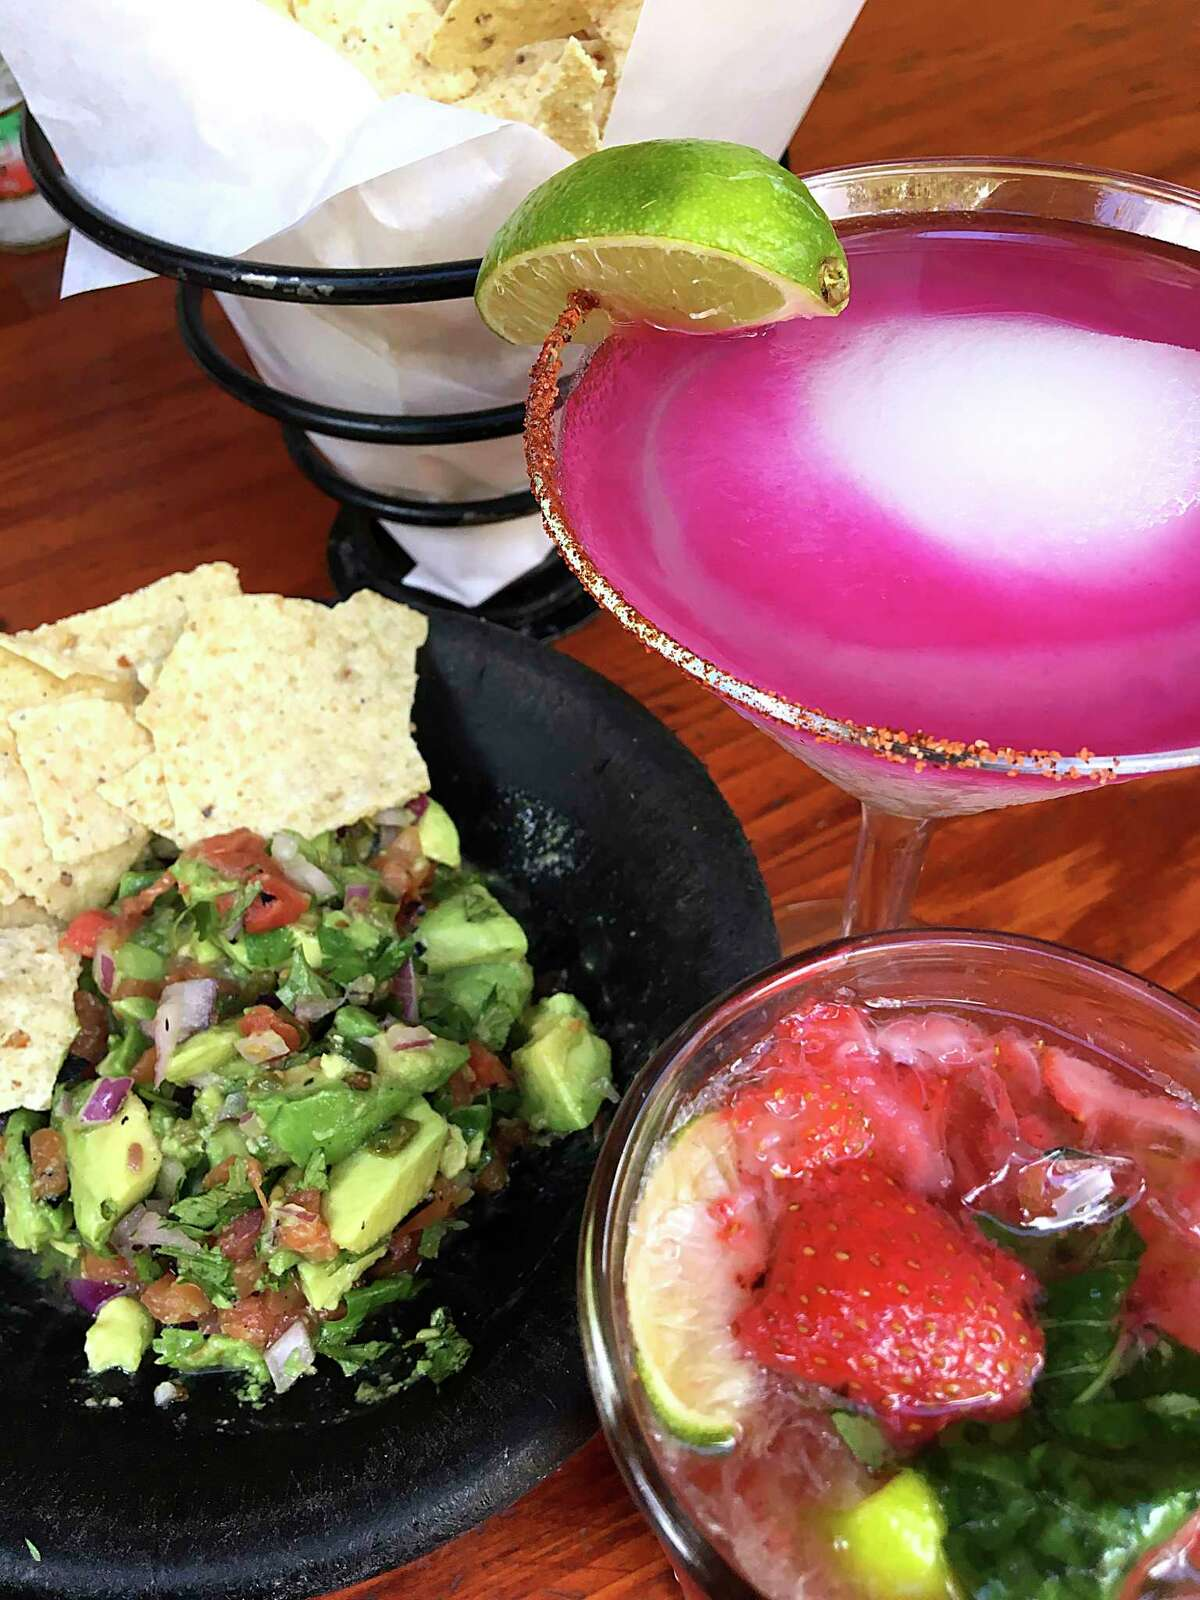 The frozen prickly pear margarita (right) long has been a hit at Boudro's Texas Bistro on the River Walk.